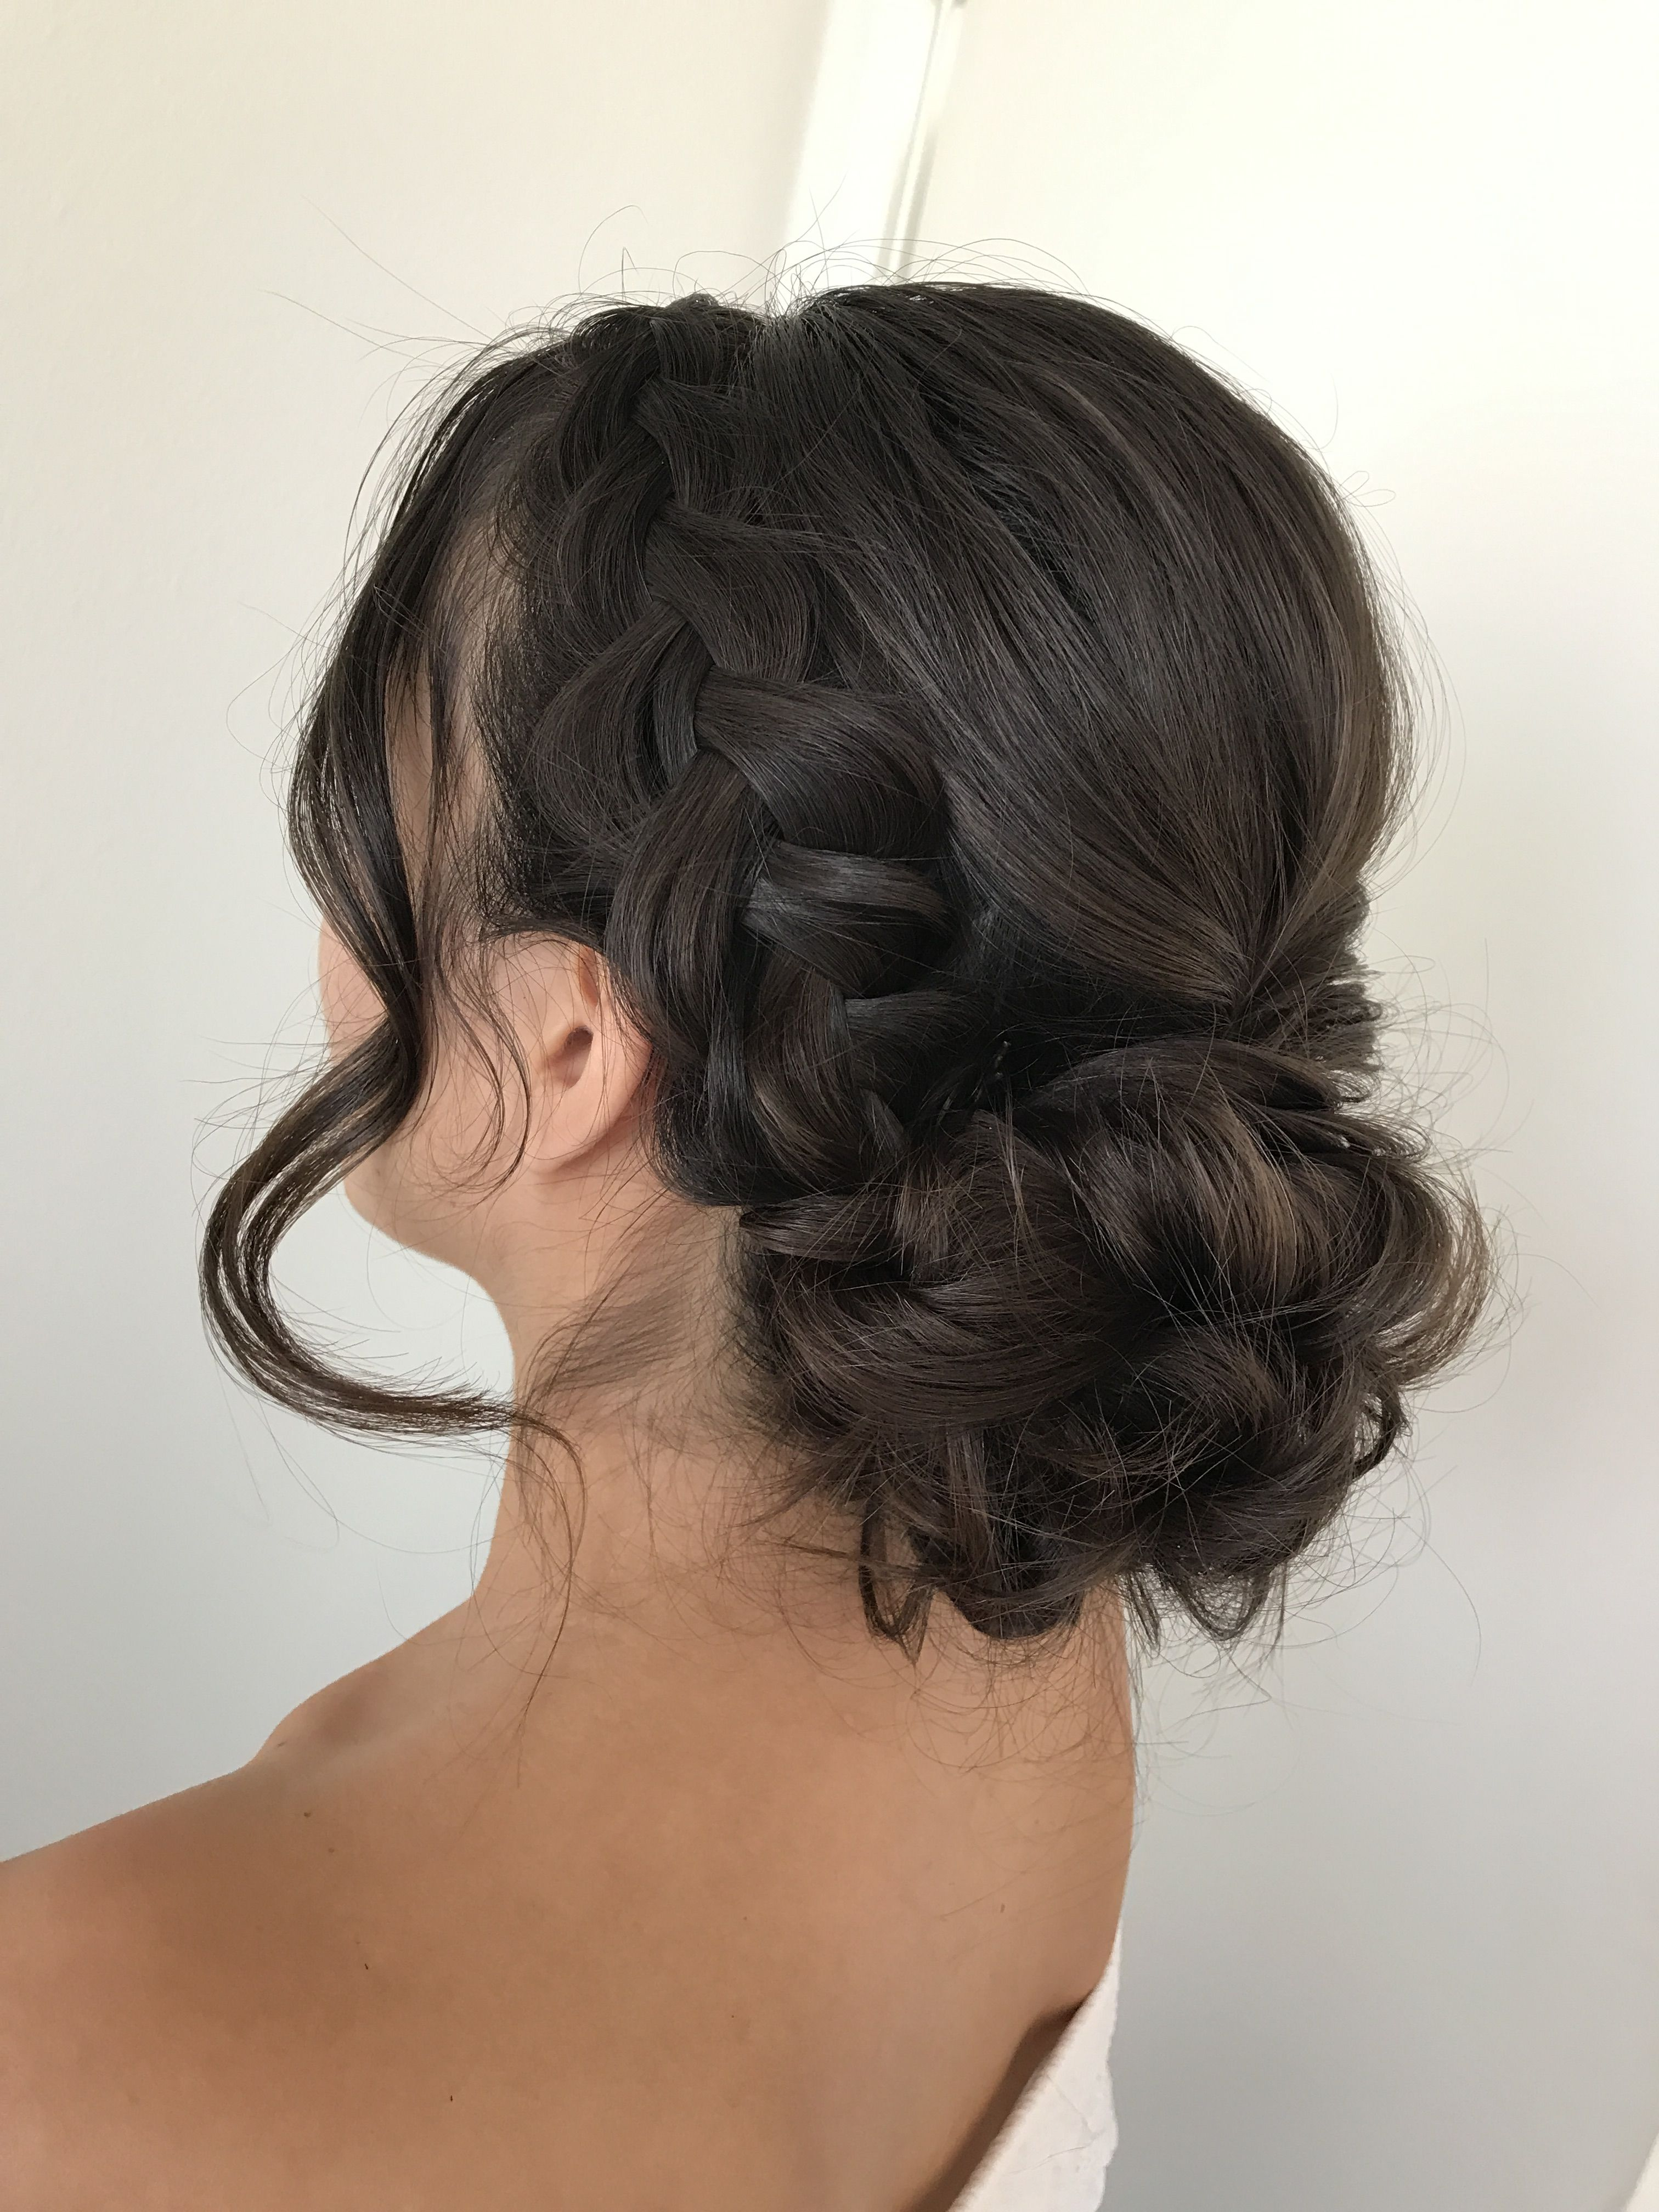 Pin By Carla On Prom Hairstyles Quince Hairstyles Hair Styles Wedding Hair Inspiration